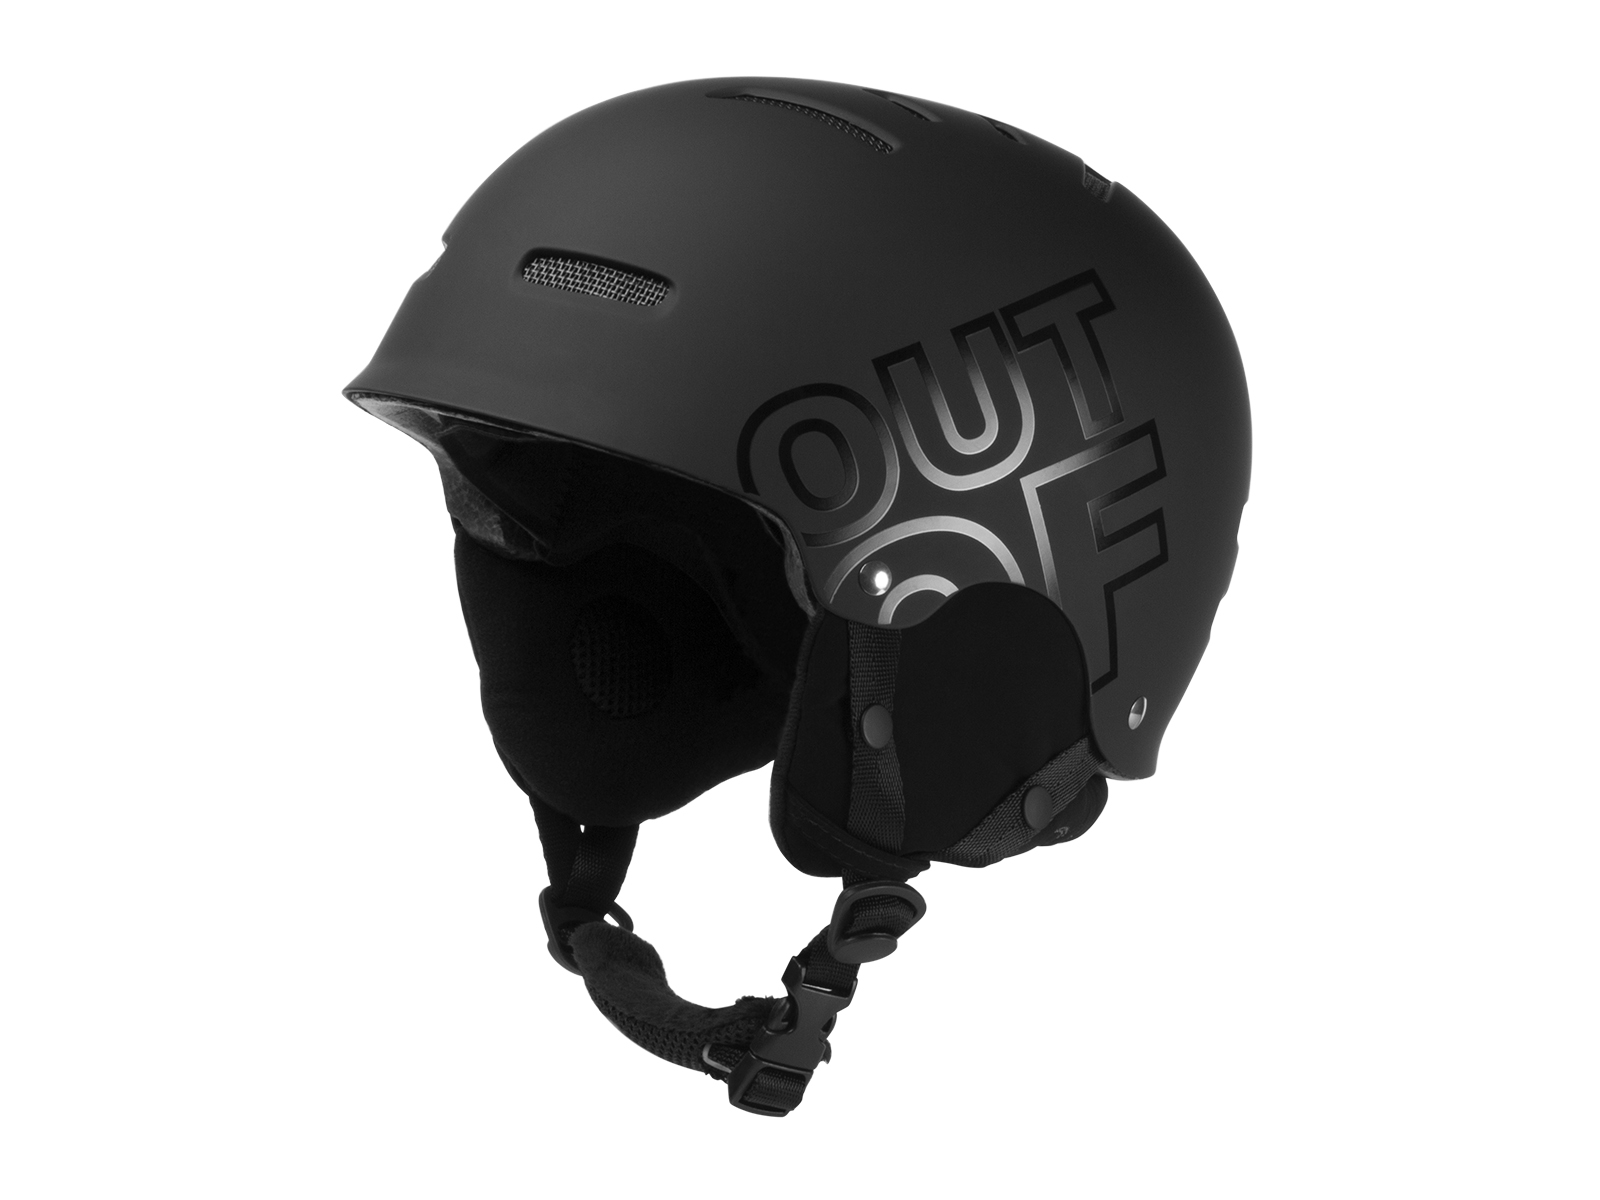 WIPEOUT BLACK HELMET